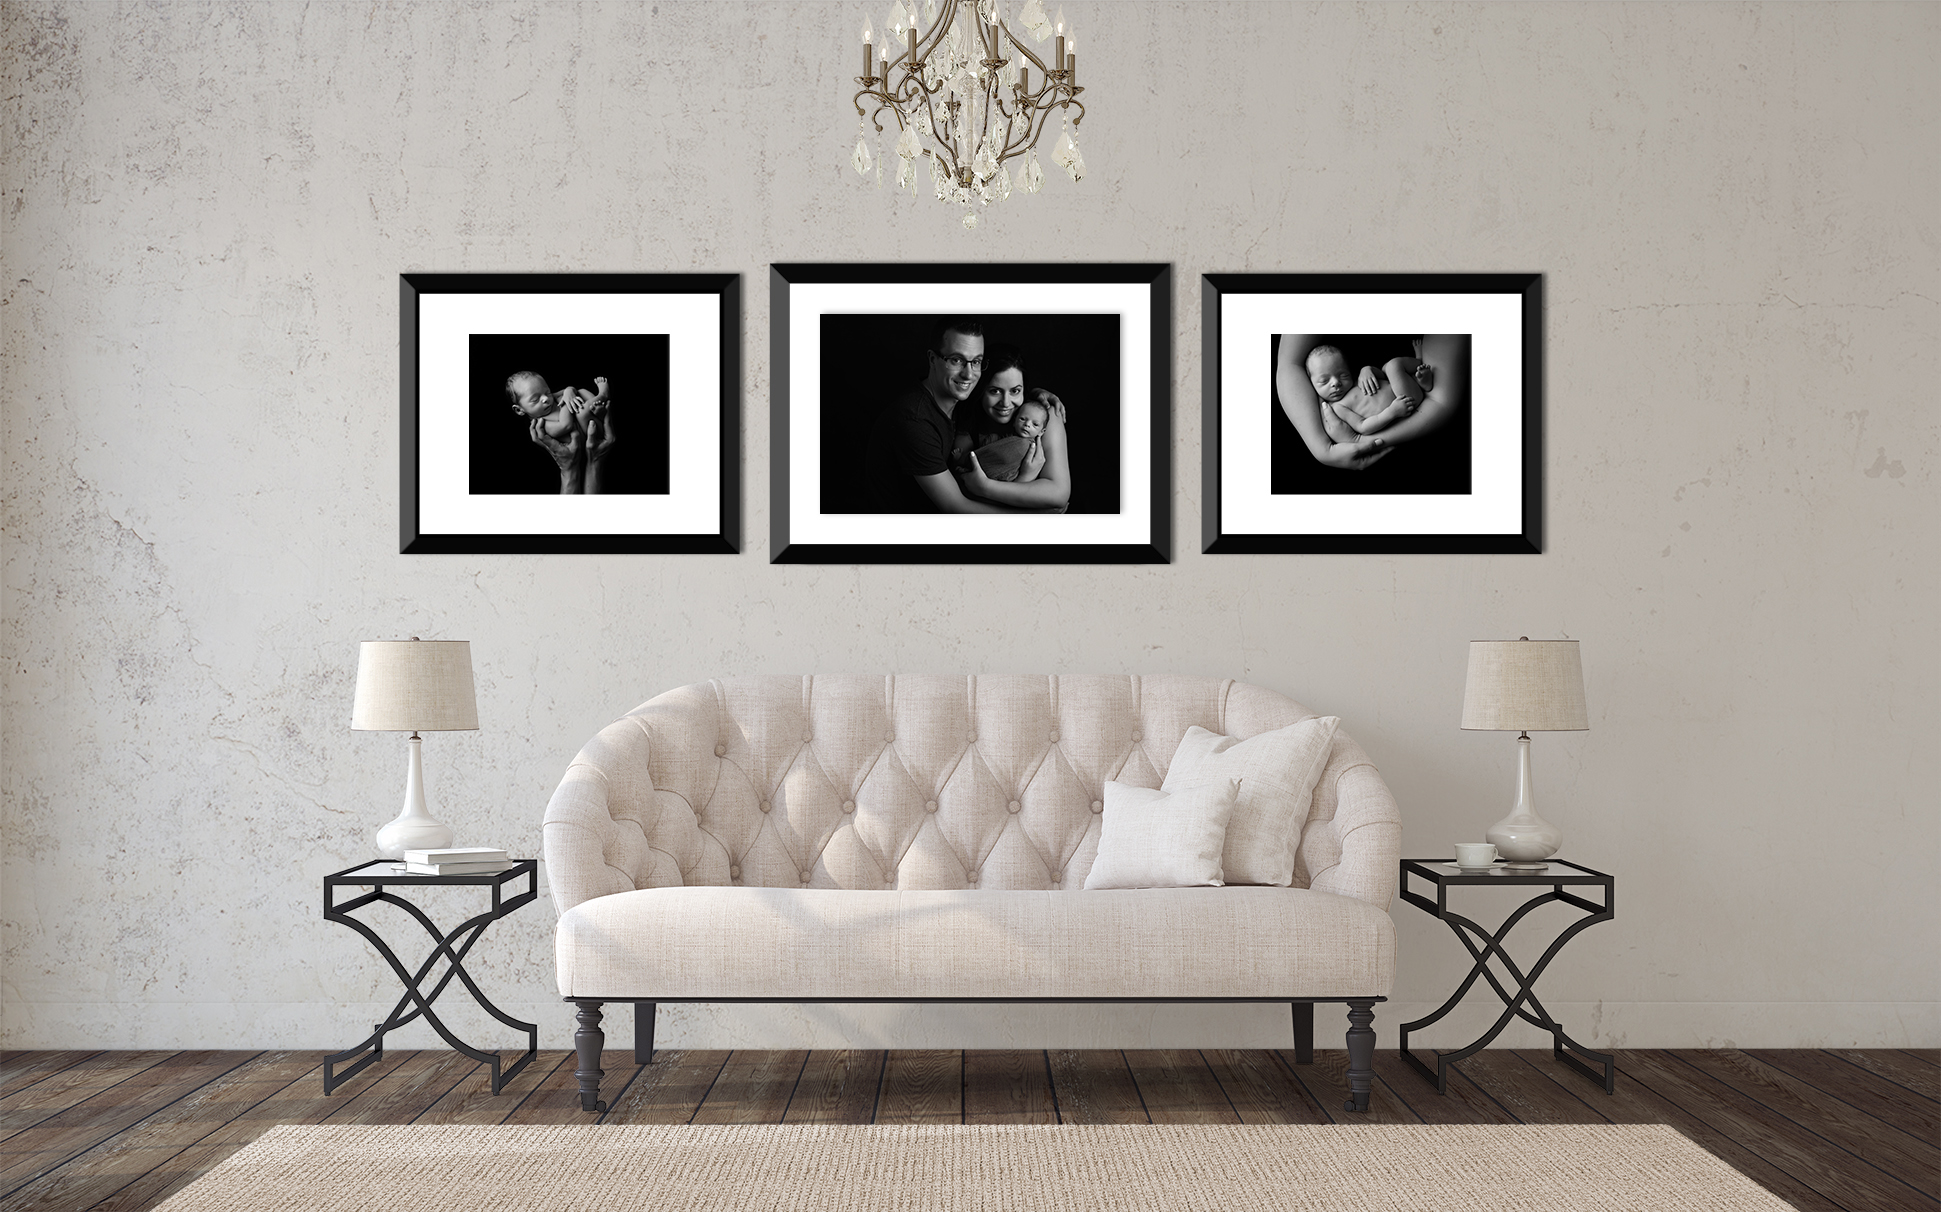 Framed Prints - Classic framed portraits to suit any decor. Beautiful wooden frames available individually or in wall groupings custom designed for your home.Prices start from $450.